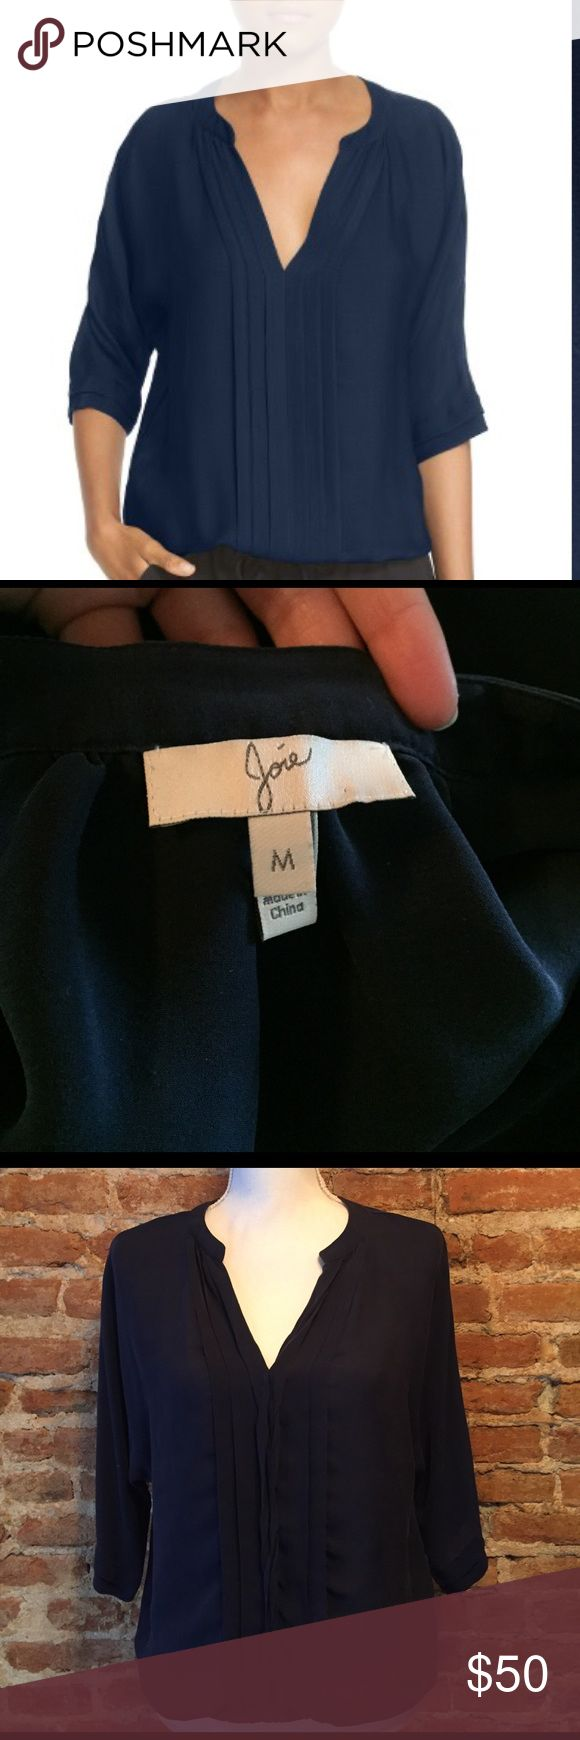 •Joie• Silk Navy Top Joie Silk 'Marru' Semi-Sheer Silk Blouse. This top is still for sale at Nordstroms for $208. In good used condition, there are a few small marks just from storing (very minor, just want to disclose them) that will come out next time it is dry cleaned (see pictures for details). Joie Tops Blouses